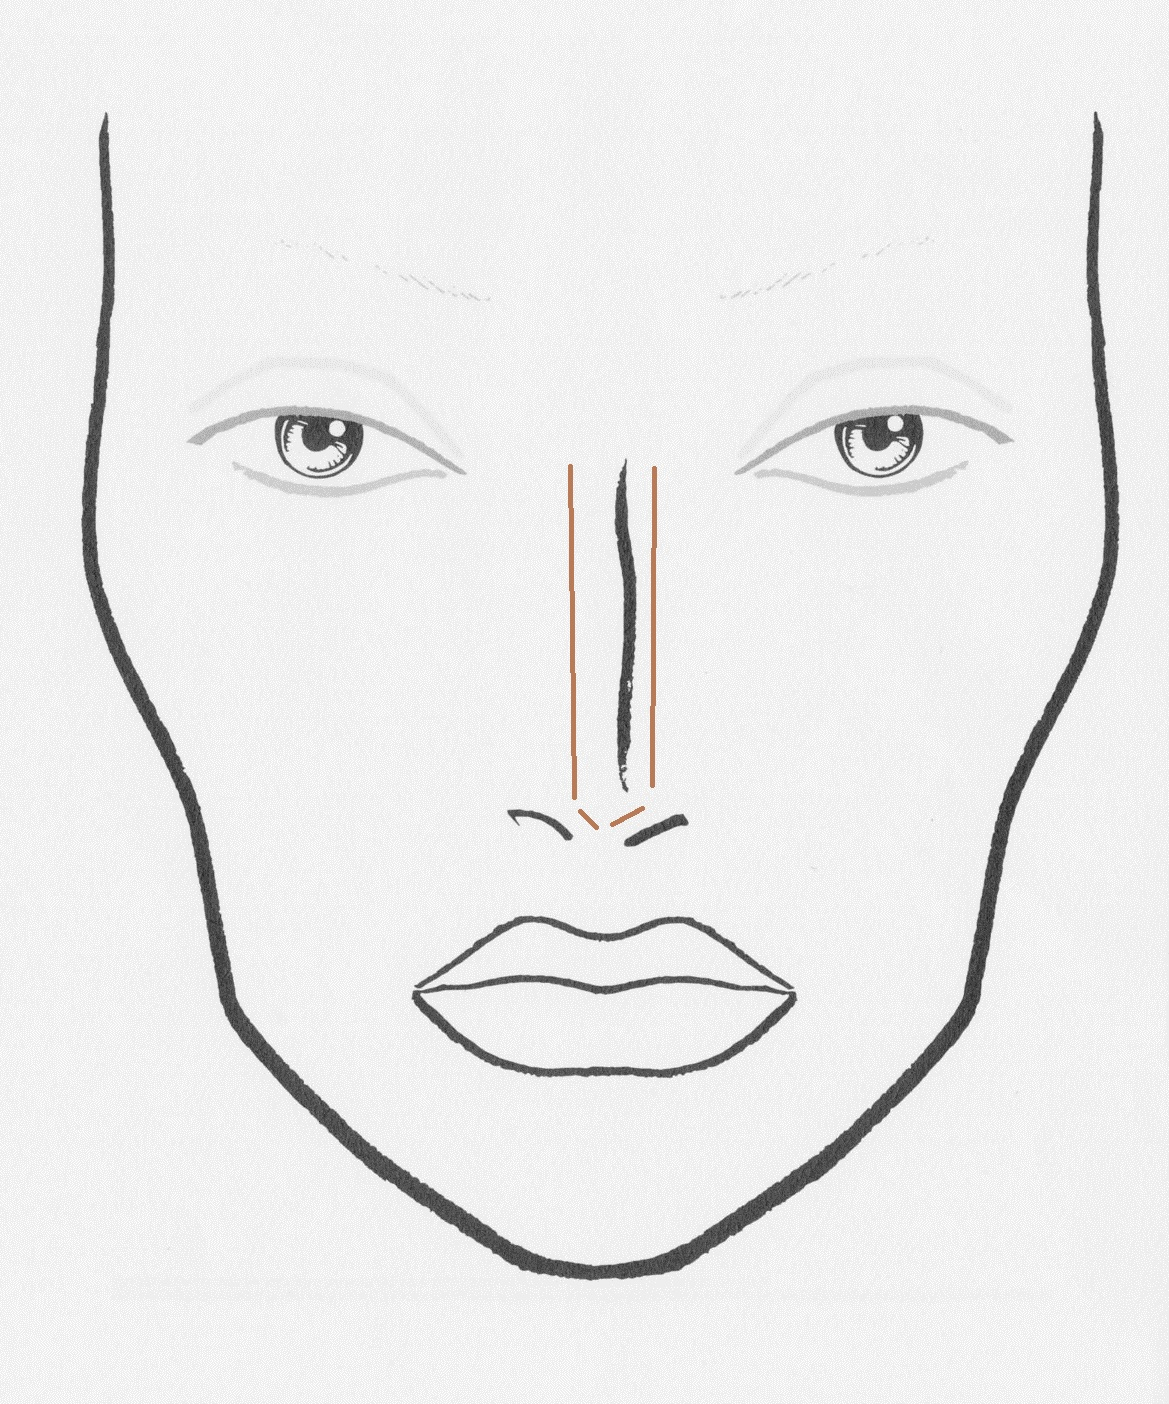 Contouring 101 (slim Your Face The Easy Way!)